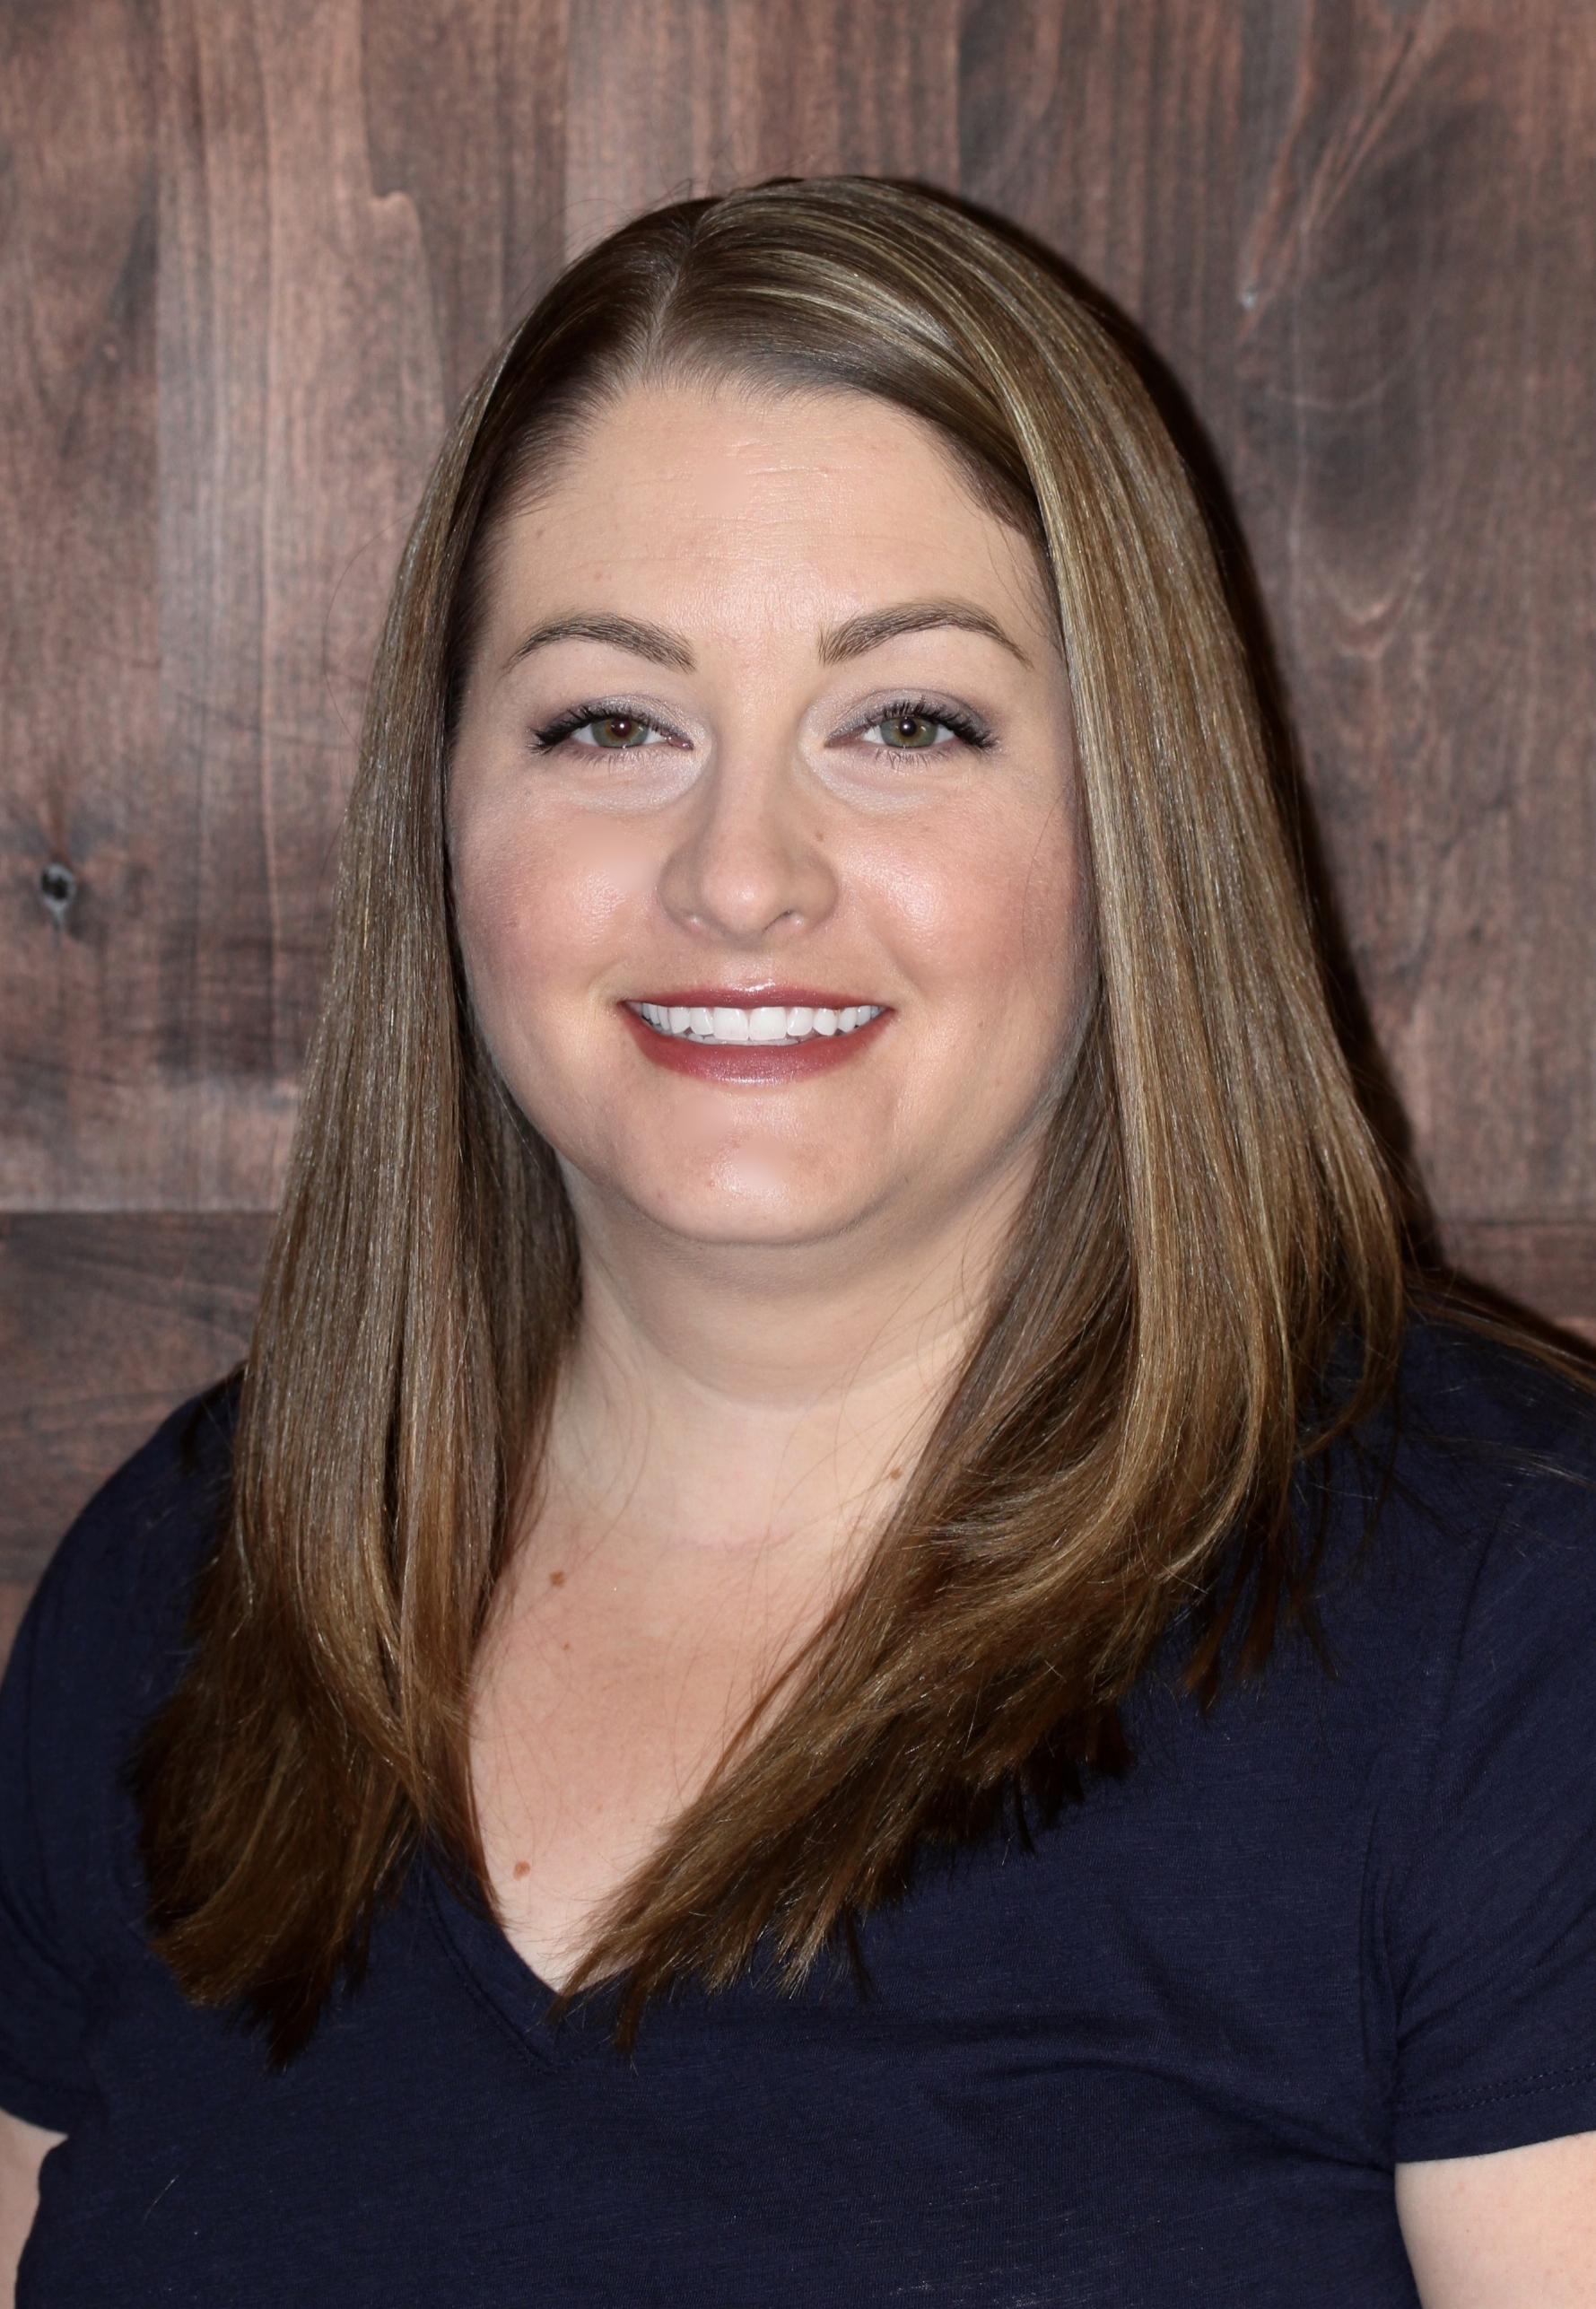 Sarah | Registered Dental Hygienist - Sarah is the longest standing member of our team. She started at the office in 2006 after she graduated from EWU with a Bachelor of Science in Dental Hygiene. She grew up in Newport, WA and is the mom of an adorable little boy.